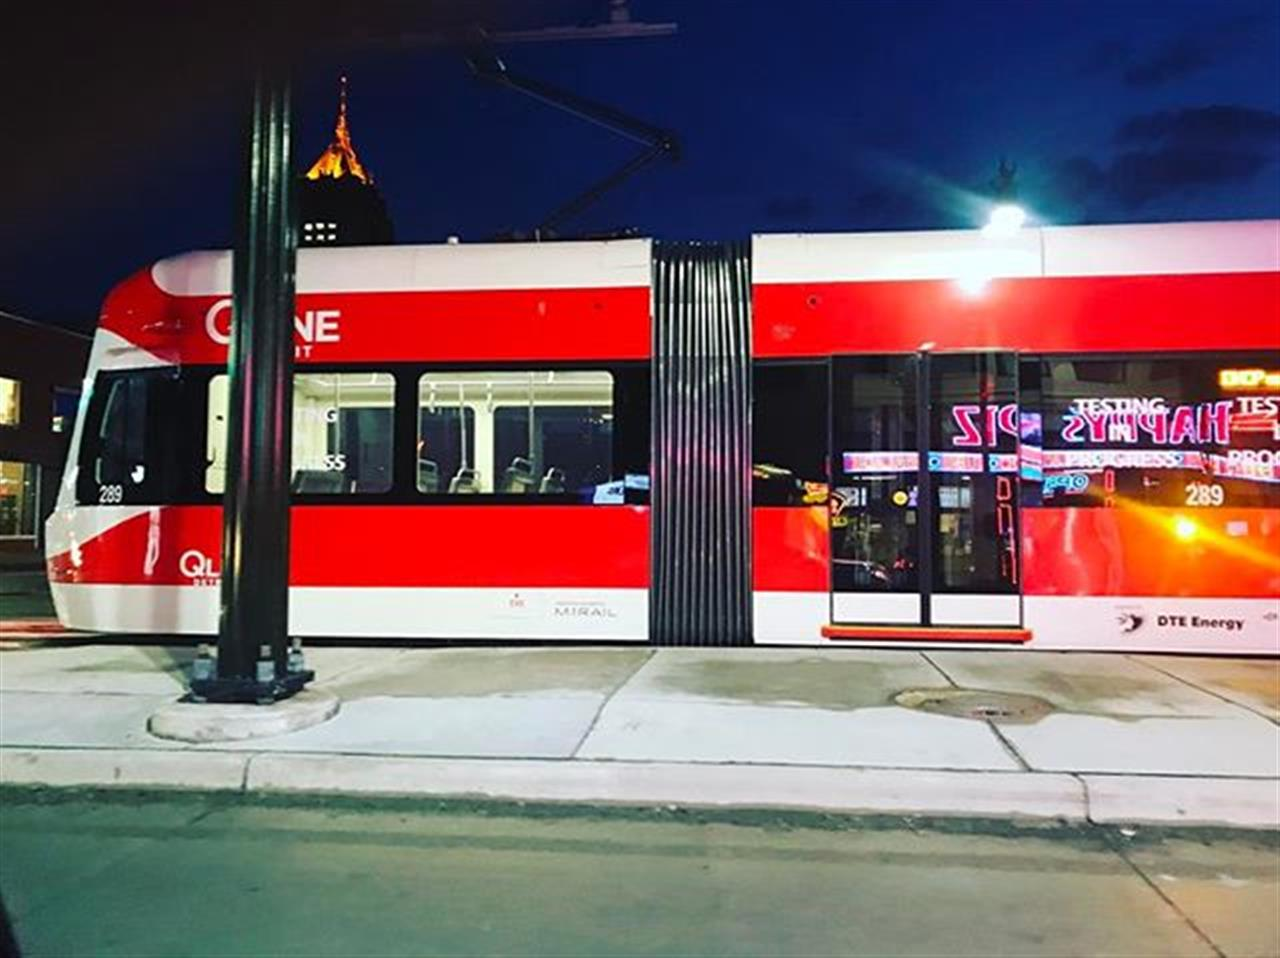 Super excited to see the QLINE in motion tonight out on Woodward... #qline #detroit #transportation #woodwardave #leadingrelocal